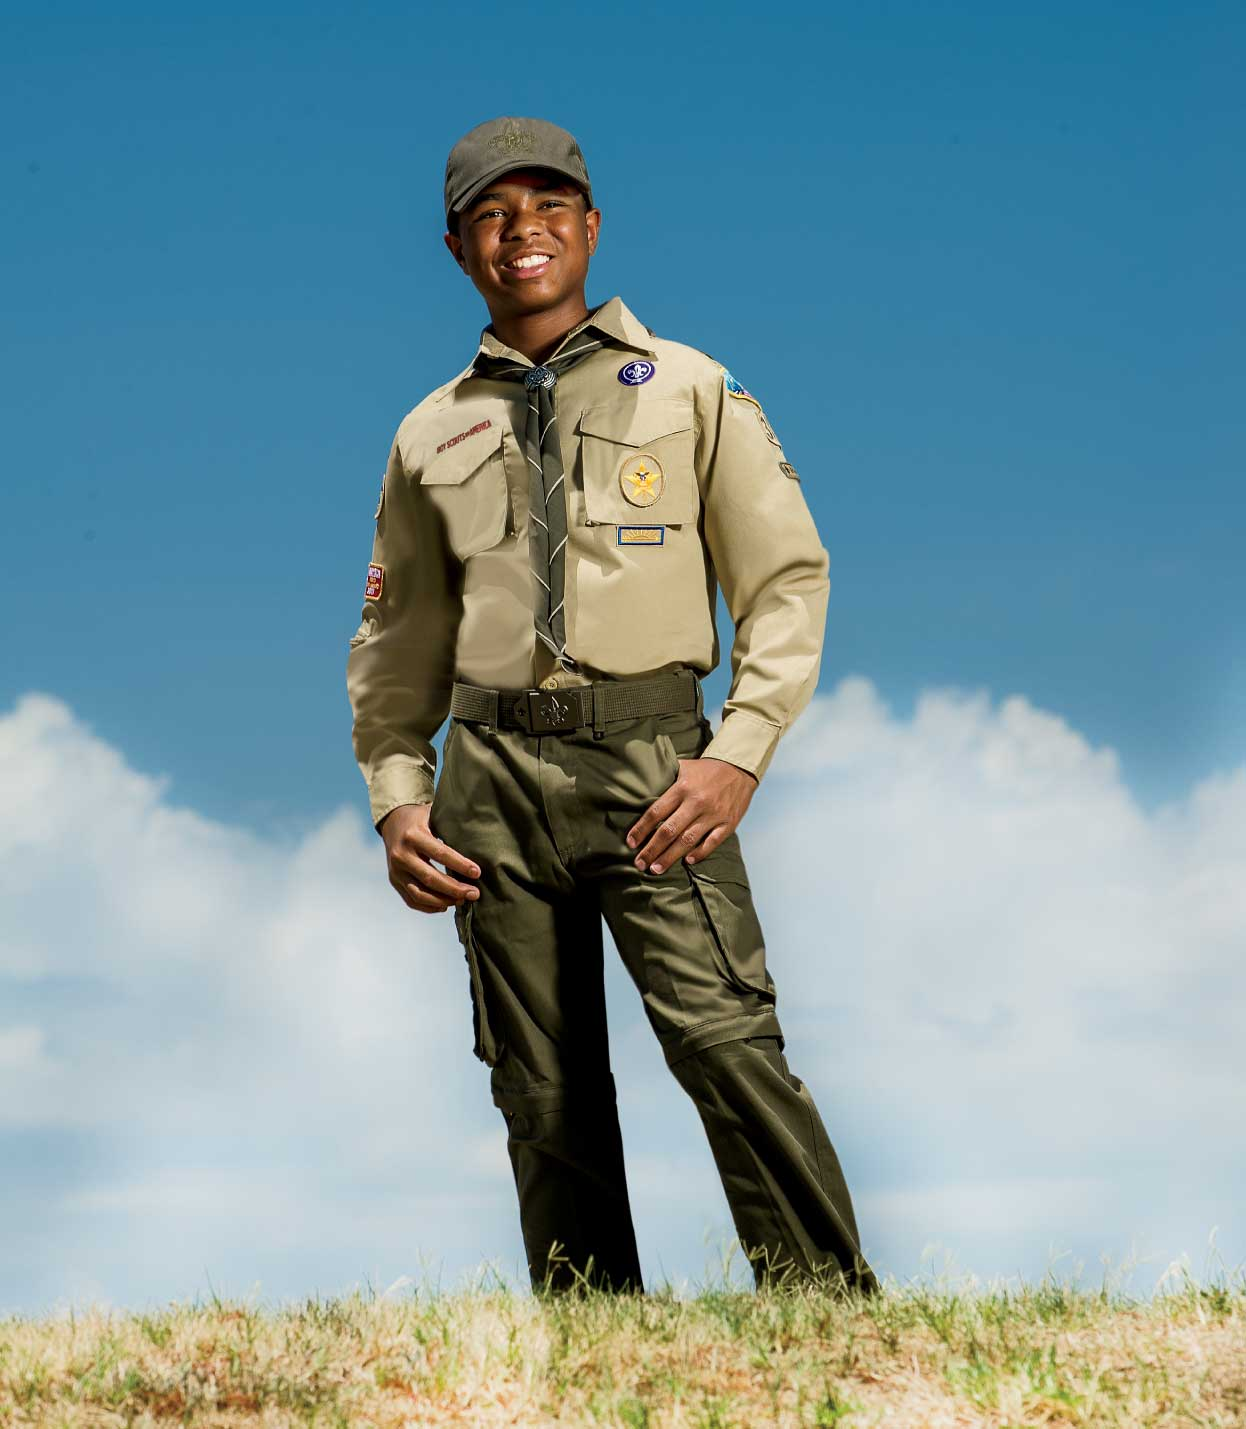 BSA Boy Scout Uniform- Tan